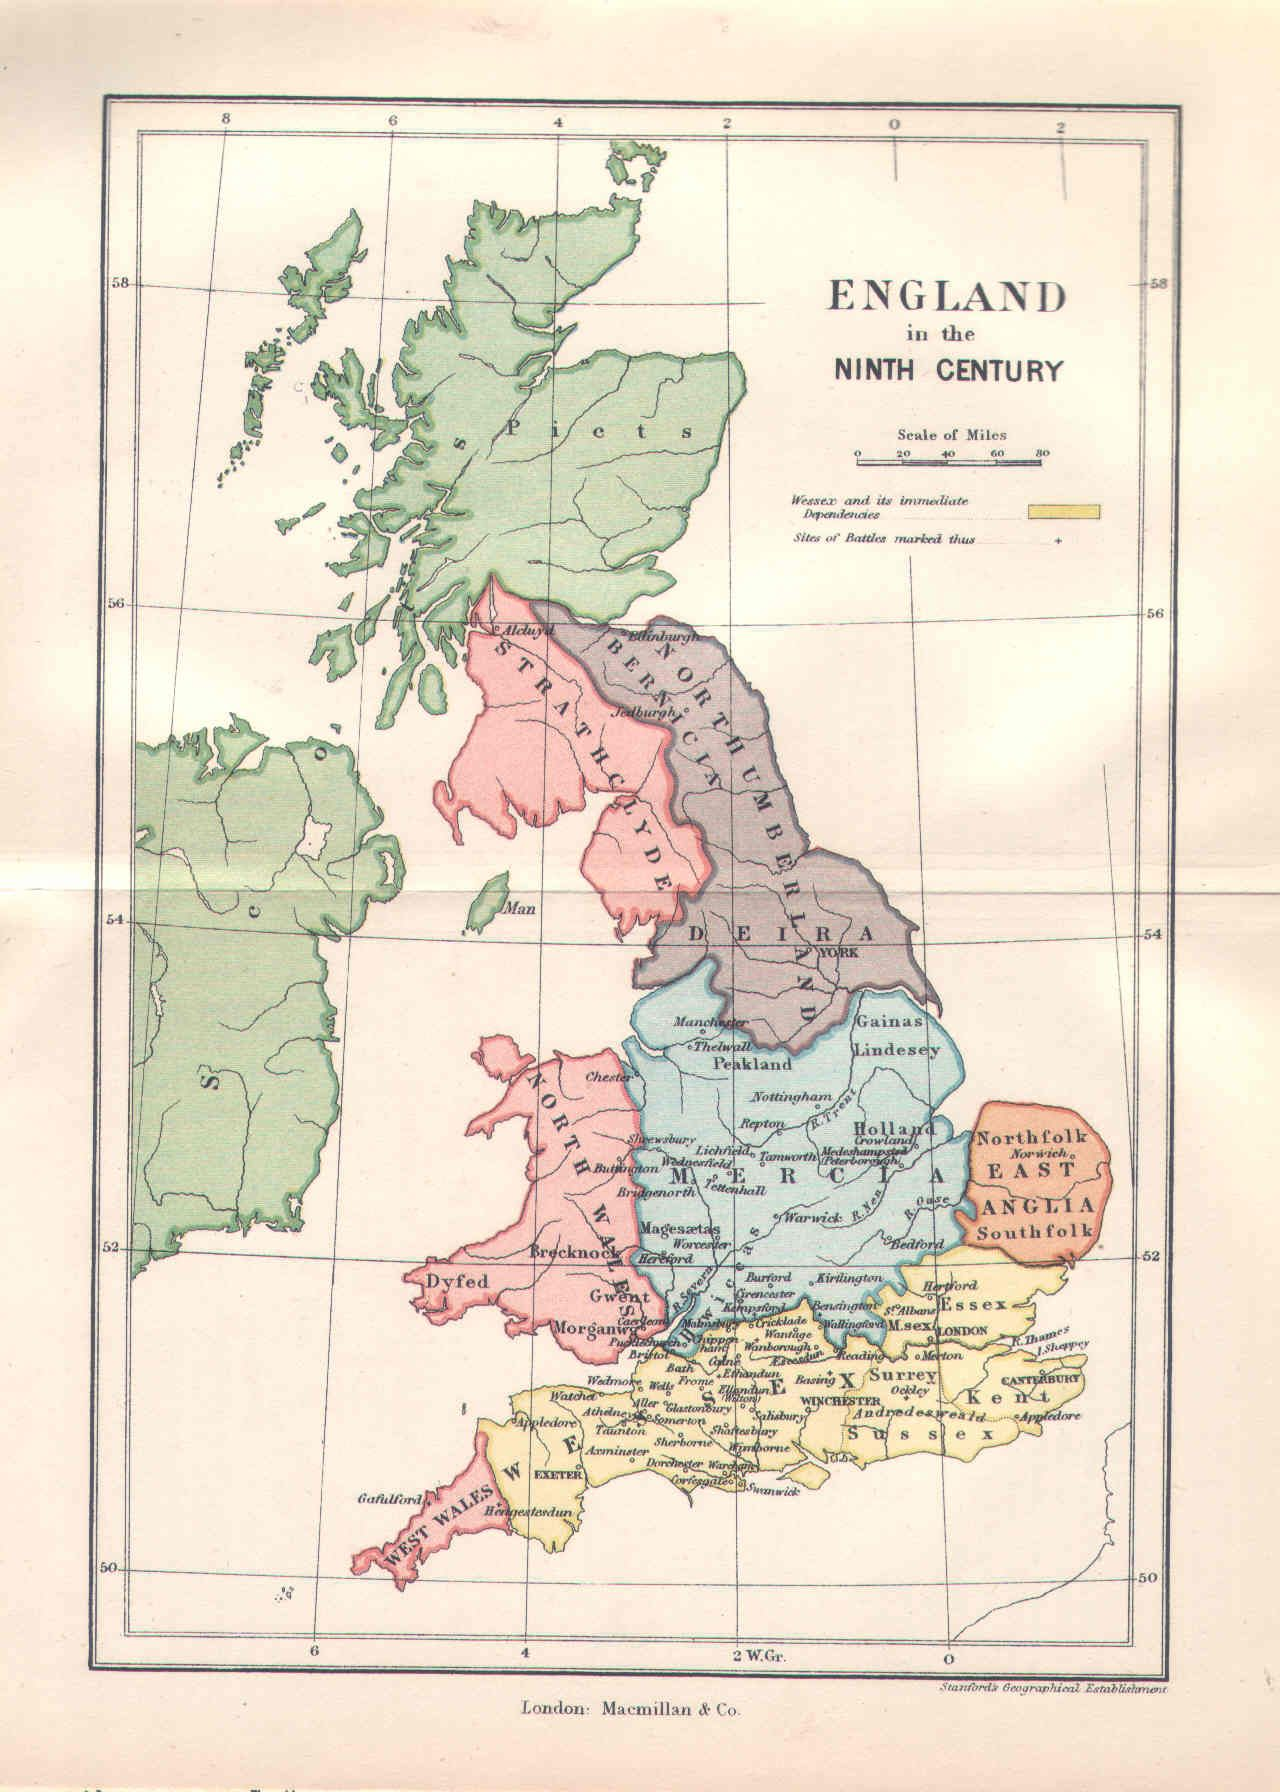 9th Century England Map Mid 9th Century England | England map, Historical maps, Map of britain